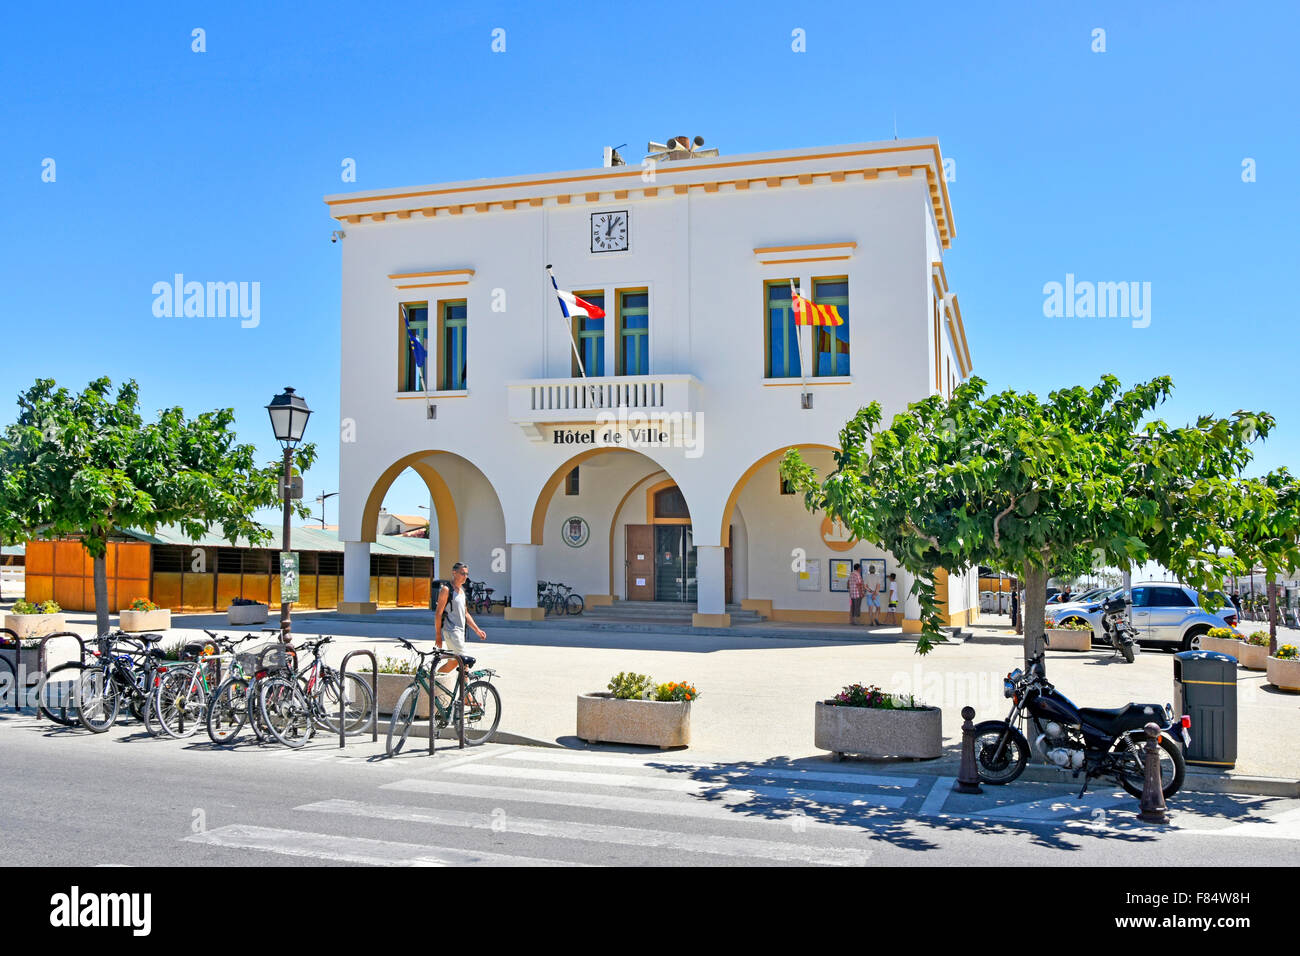 Hotel de Ville town hall in French Mediterranean seaside resort town of Saintes Maries de la Mer  Camargue, Bouches - Stock Image